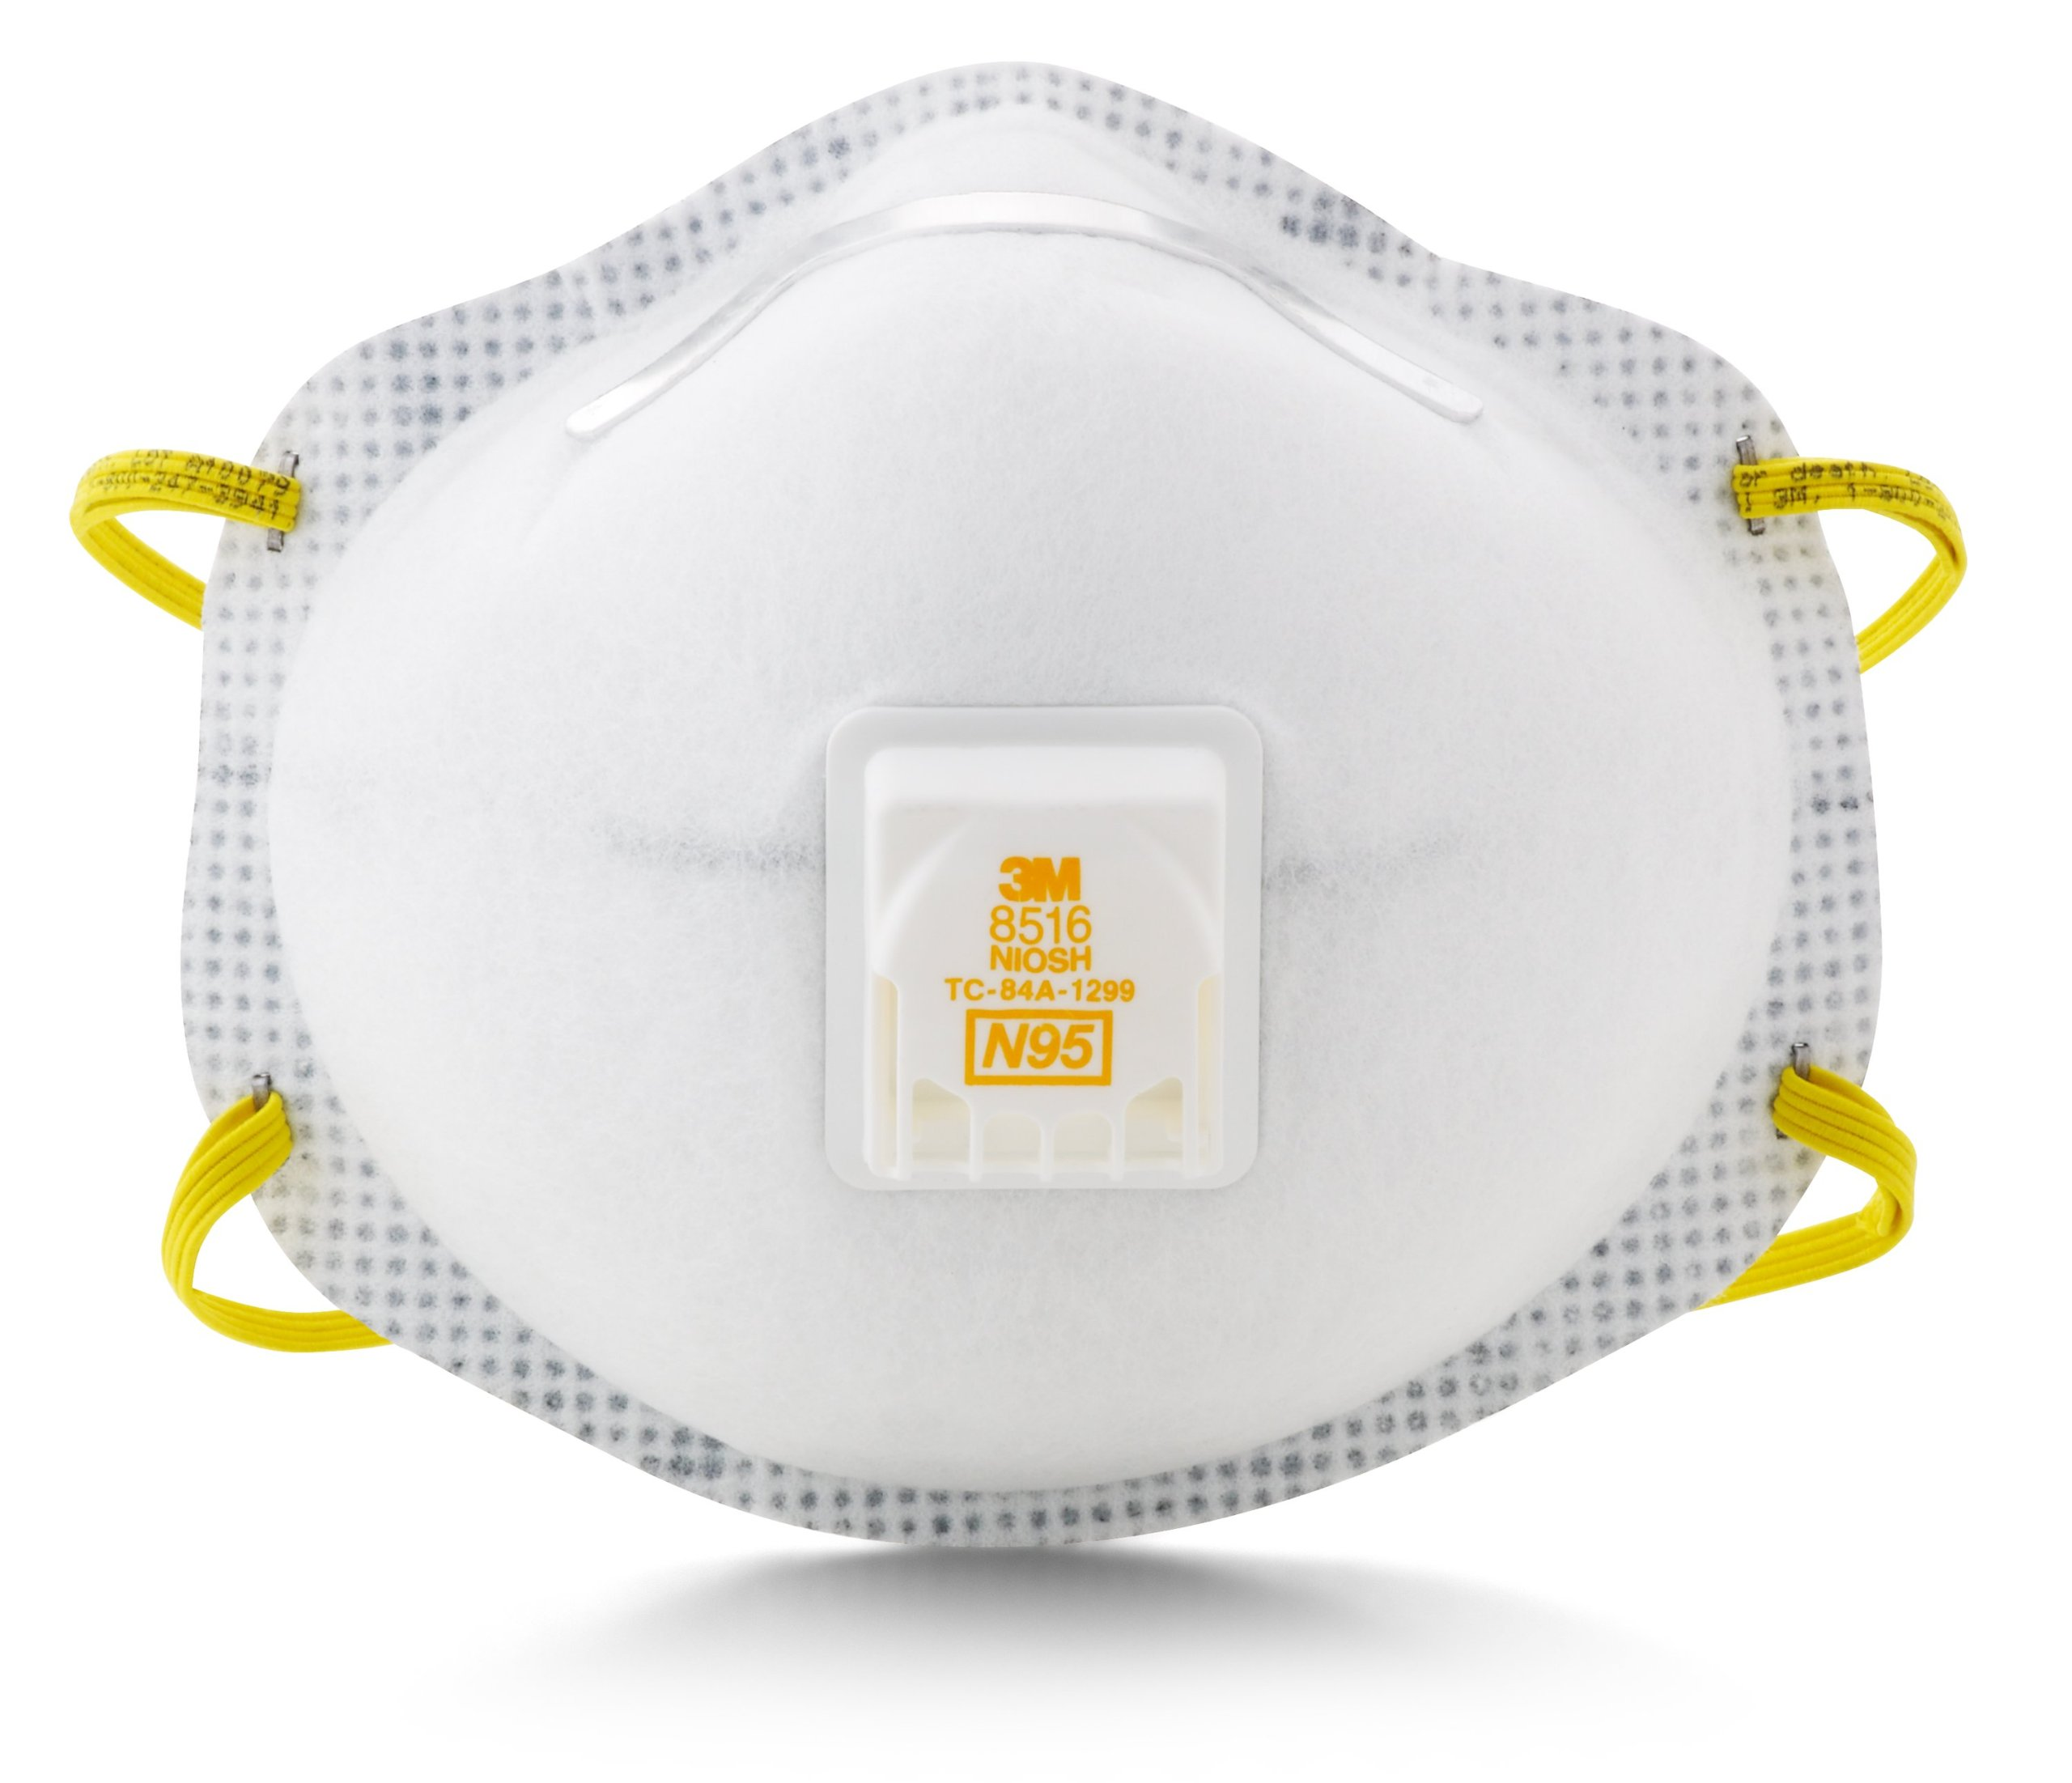 3M Particulate Respirator 8516, N95, with Nuisance Level Acid Gas Relief by 3M Personal Protective Equipment